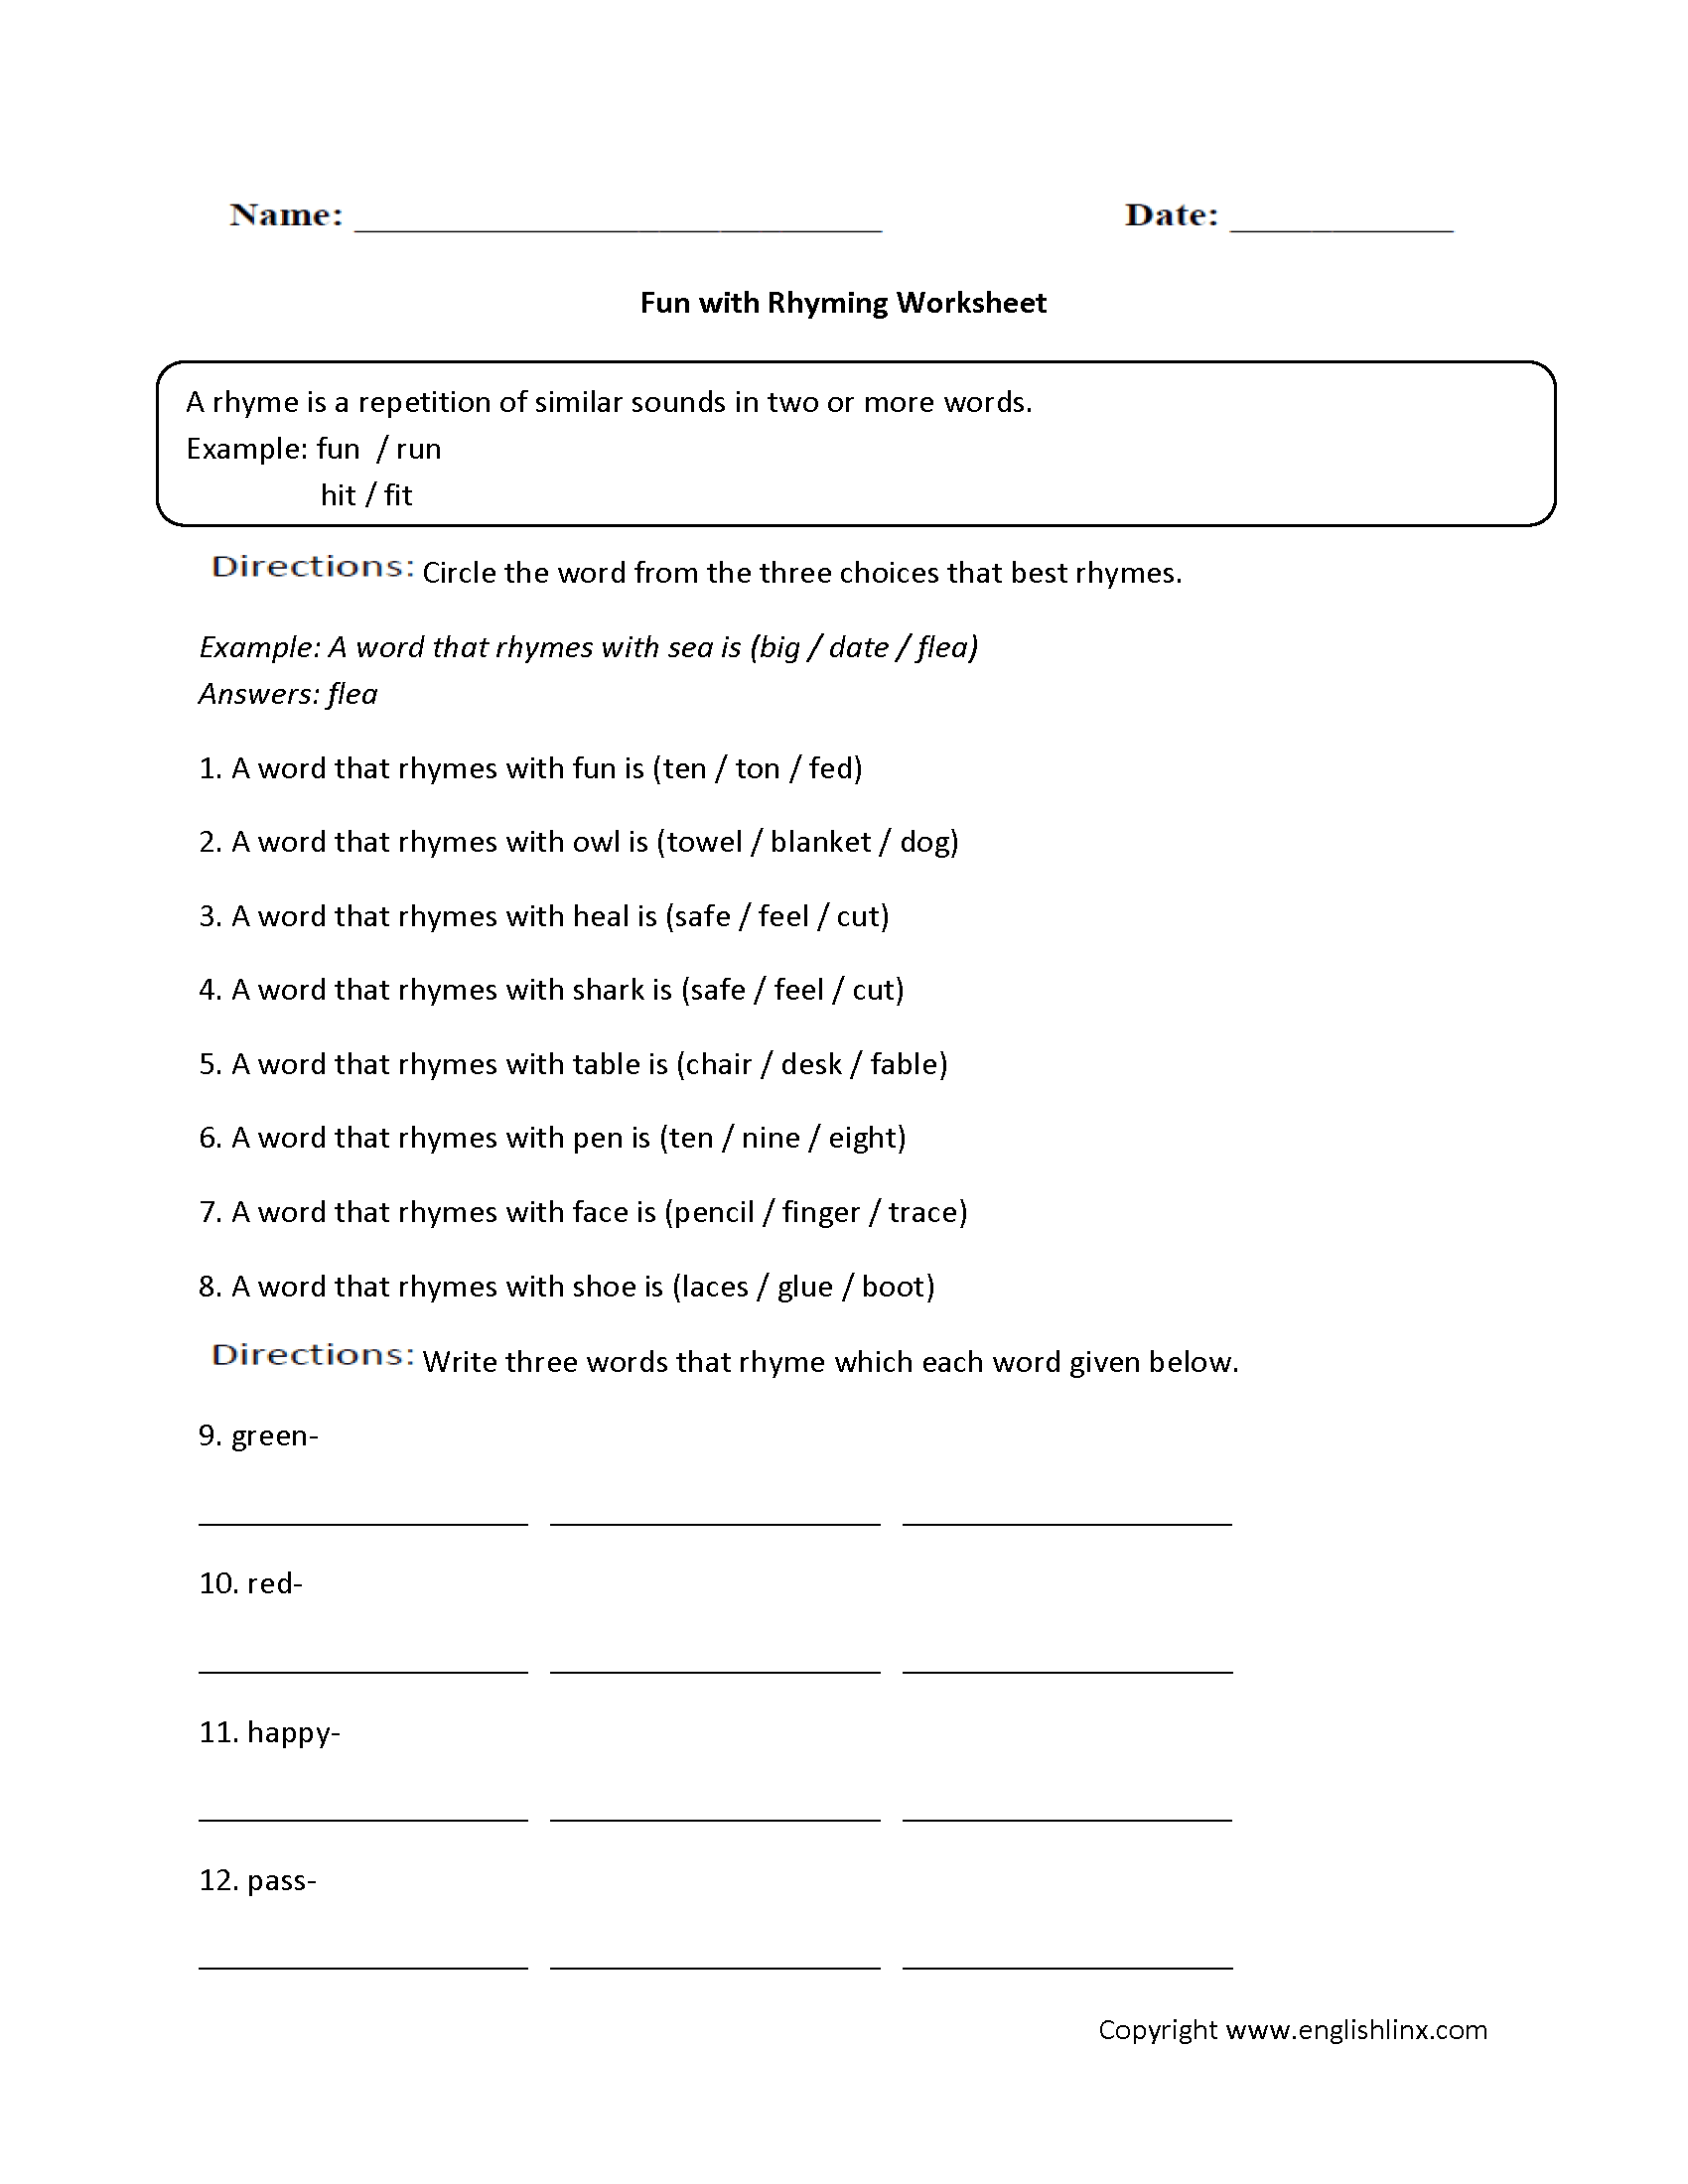 Worksheets Spelling Worksheets For 6th Grade englishlinx com rhyming worksheets grades 9 12 worksheets